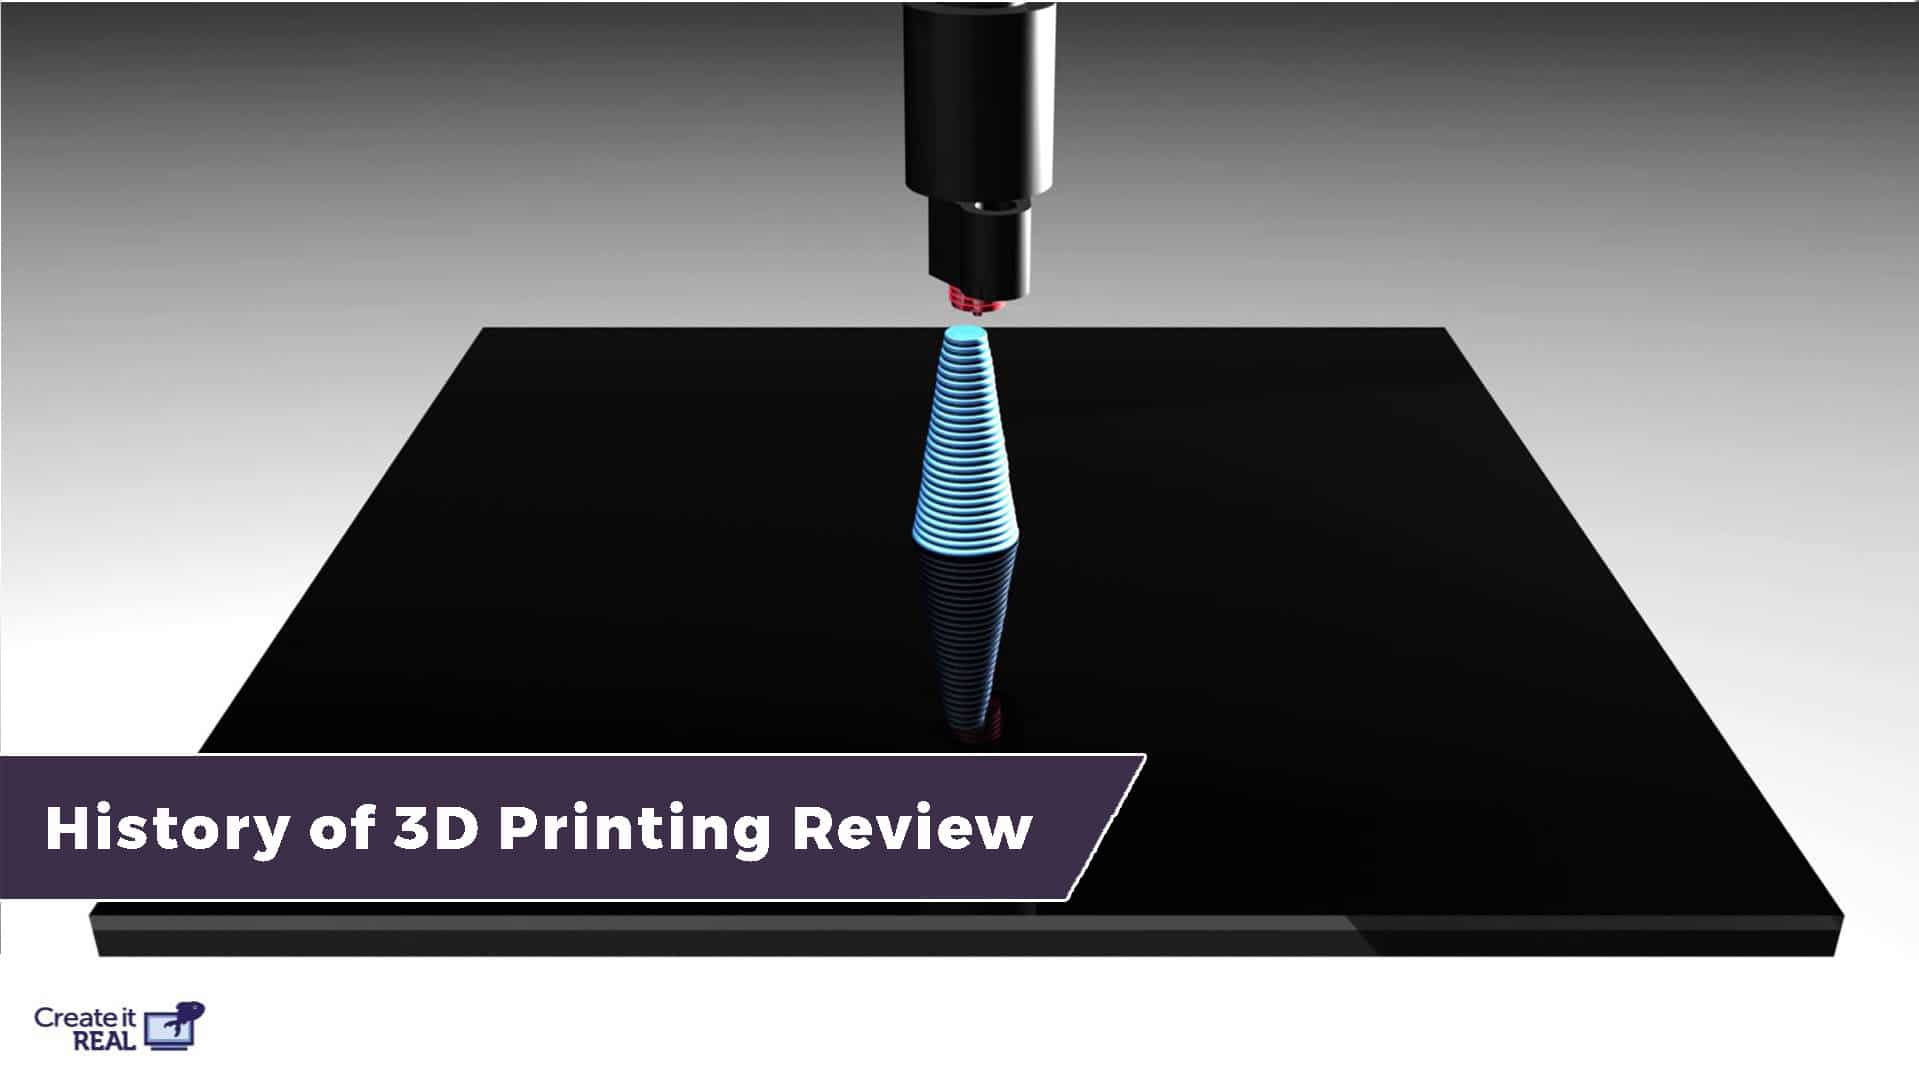 The History of 3D printing - From the first 3D printer to modern inventions 21